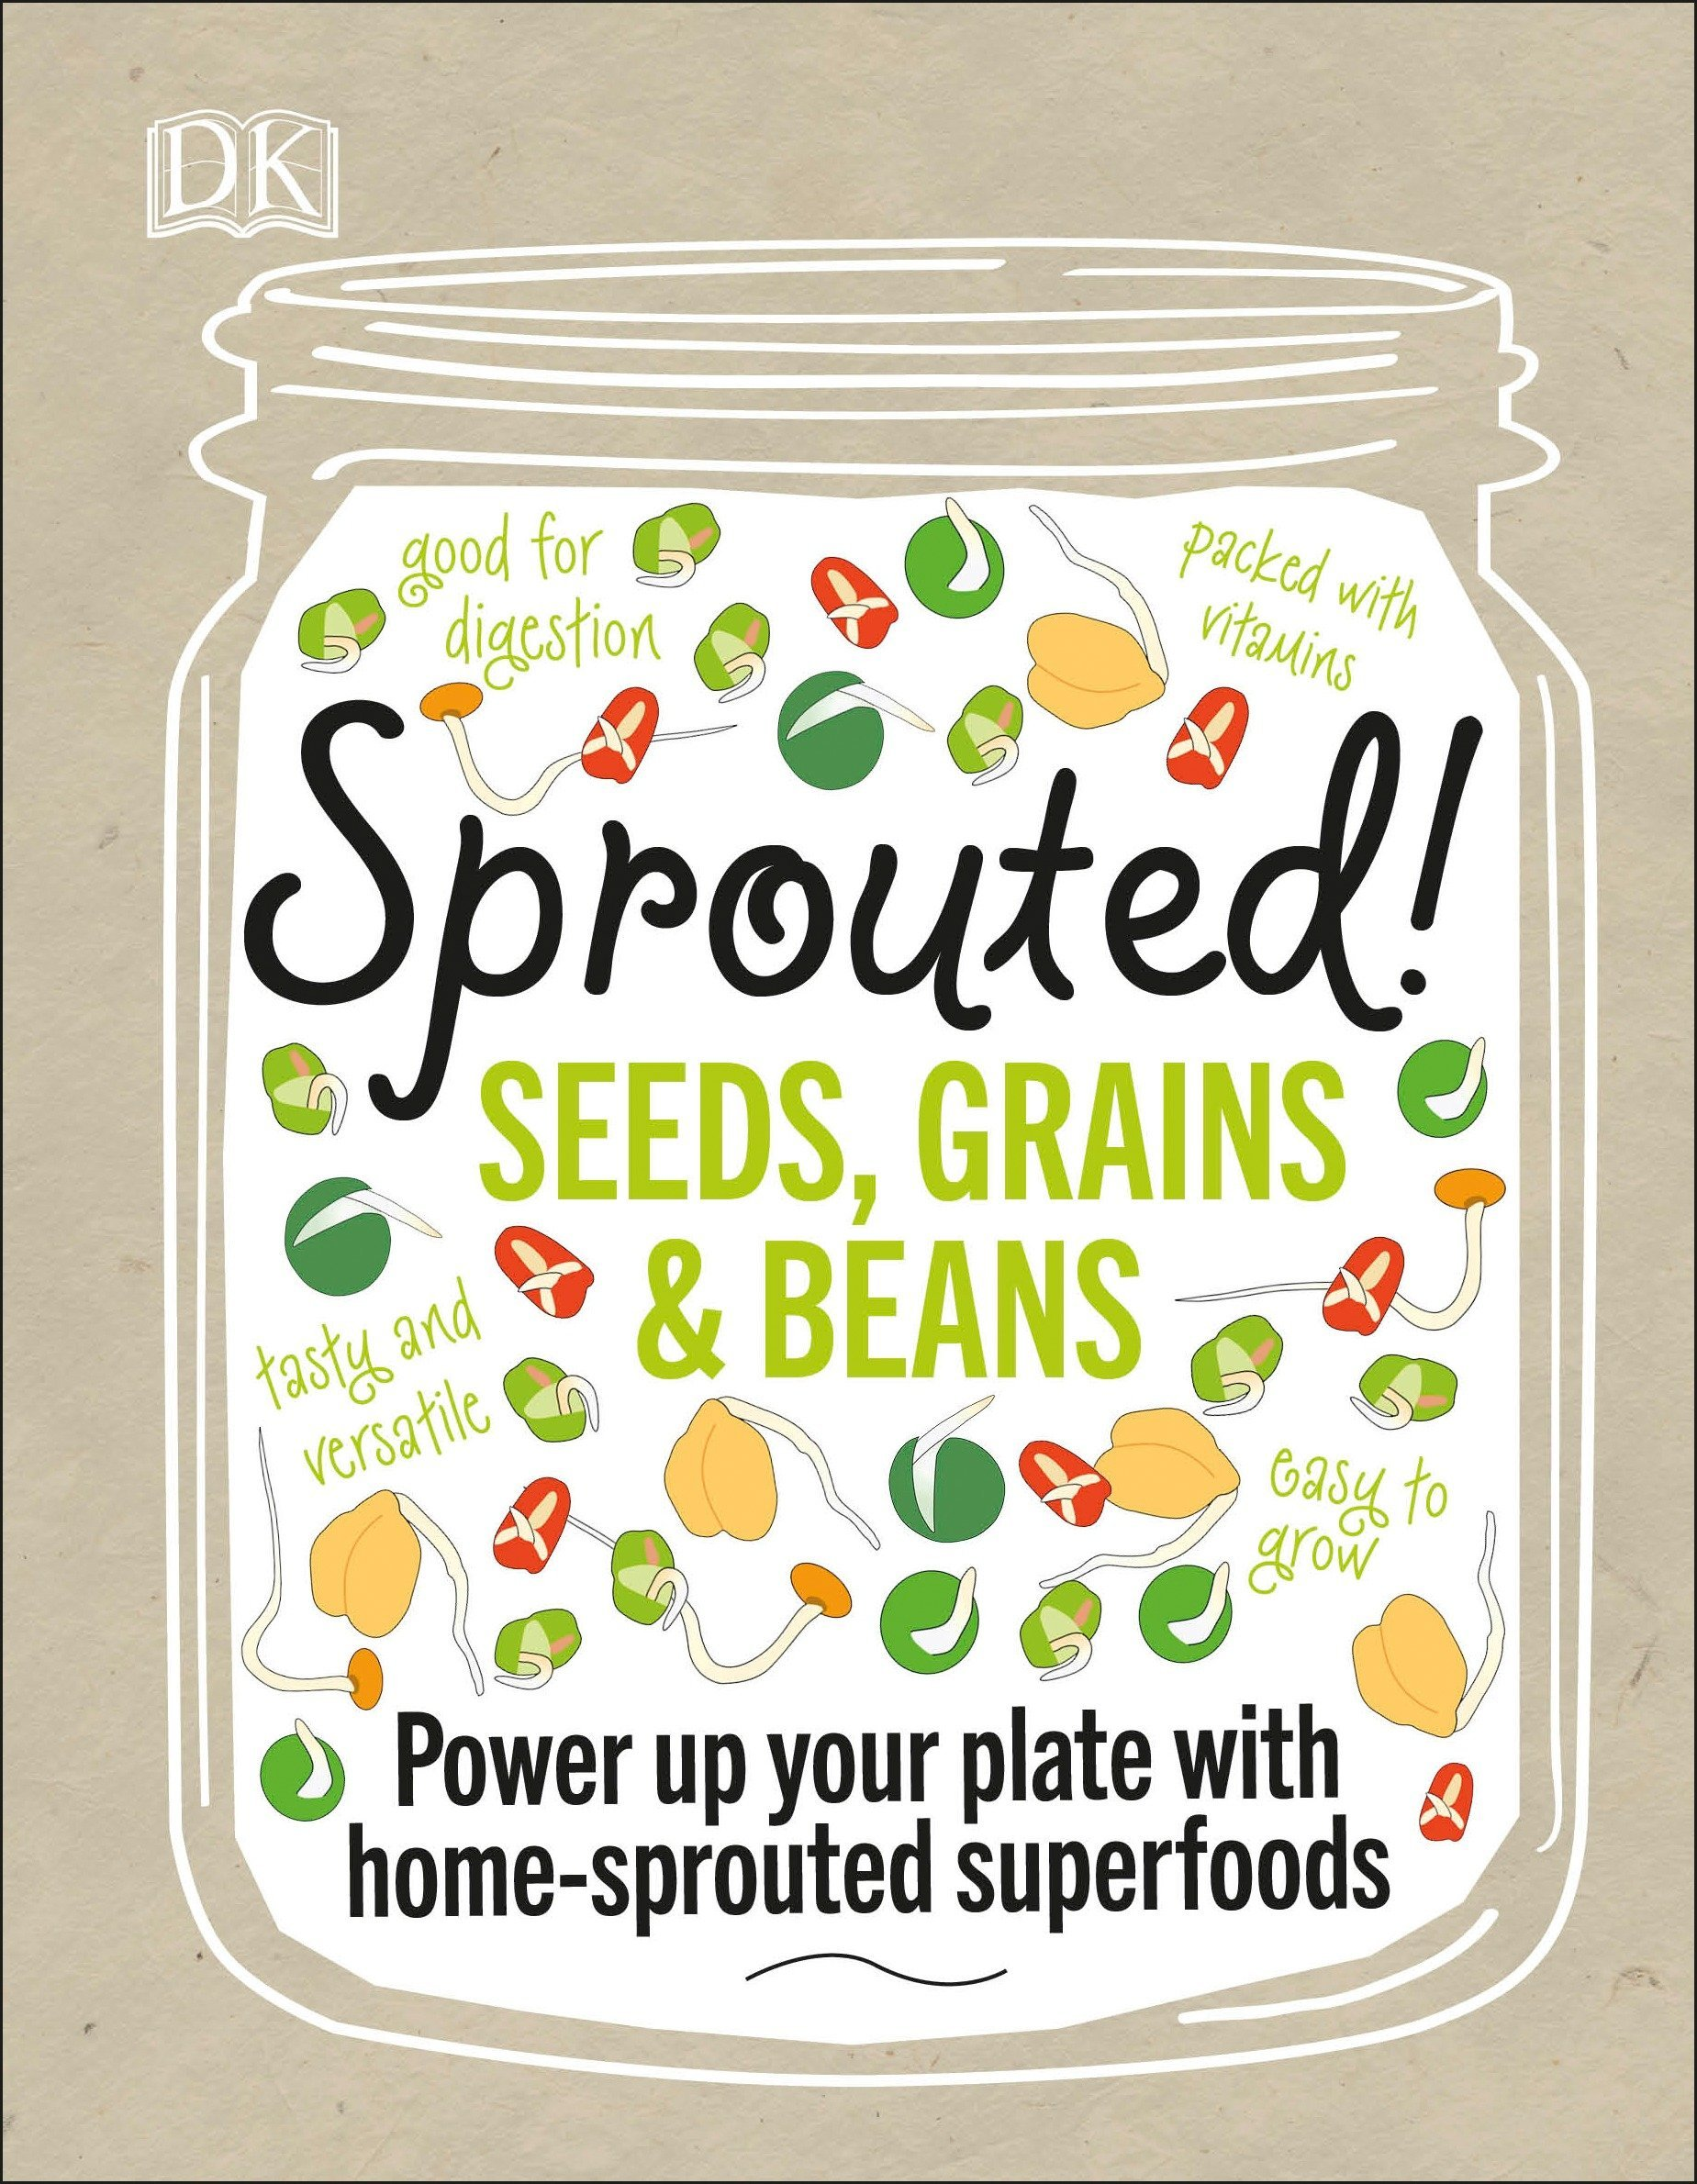 photo 5 protein-packed sprouting superfoods